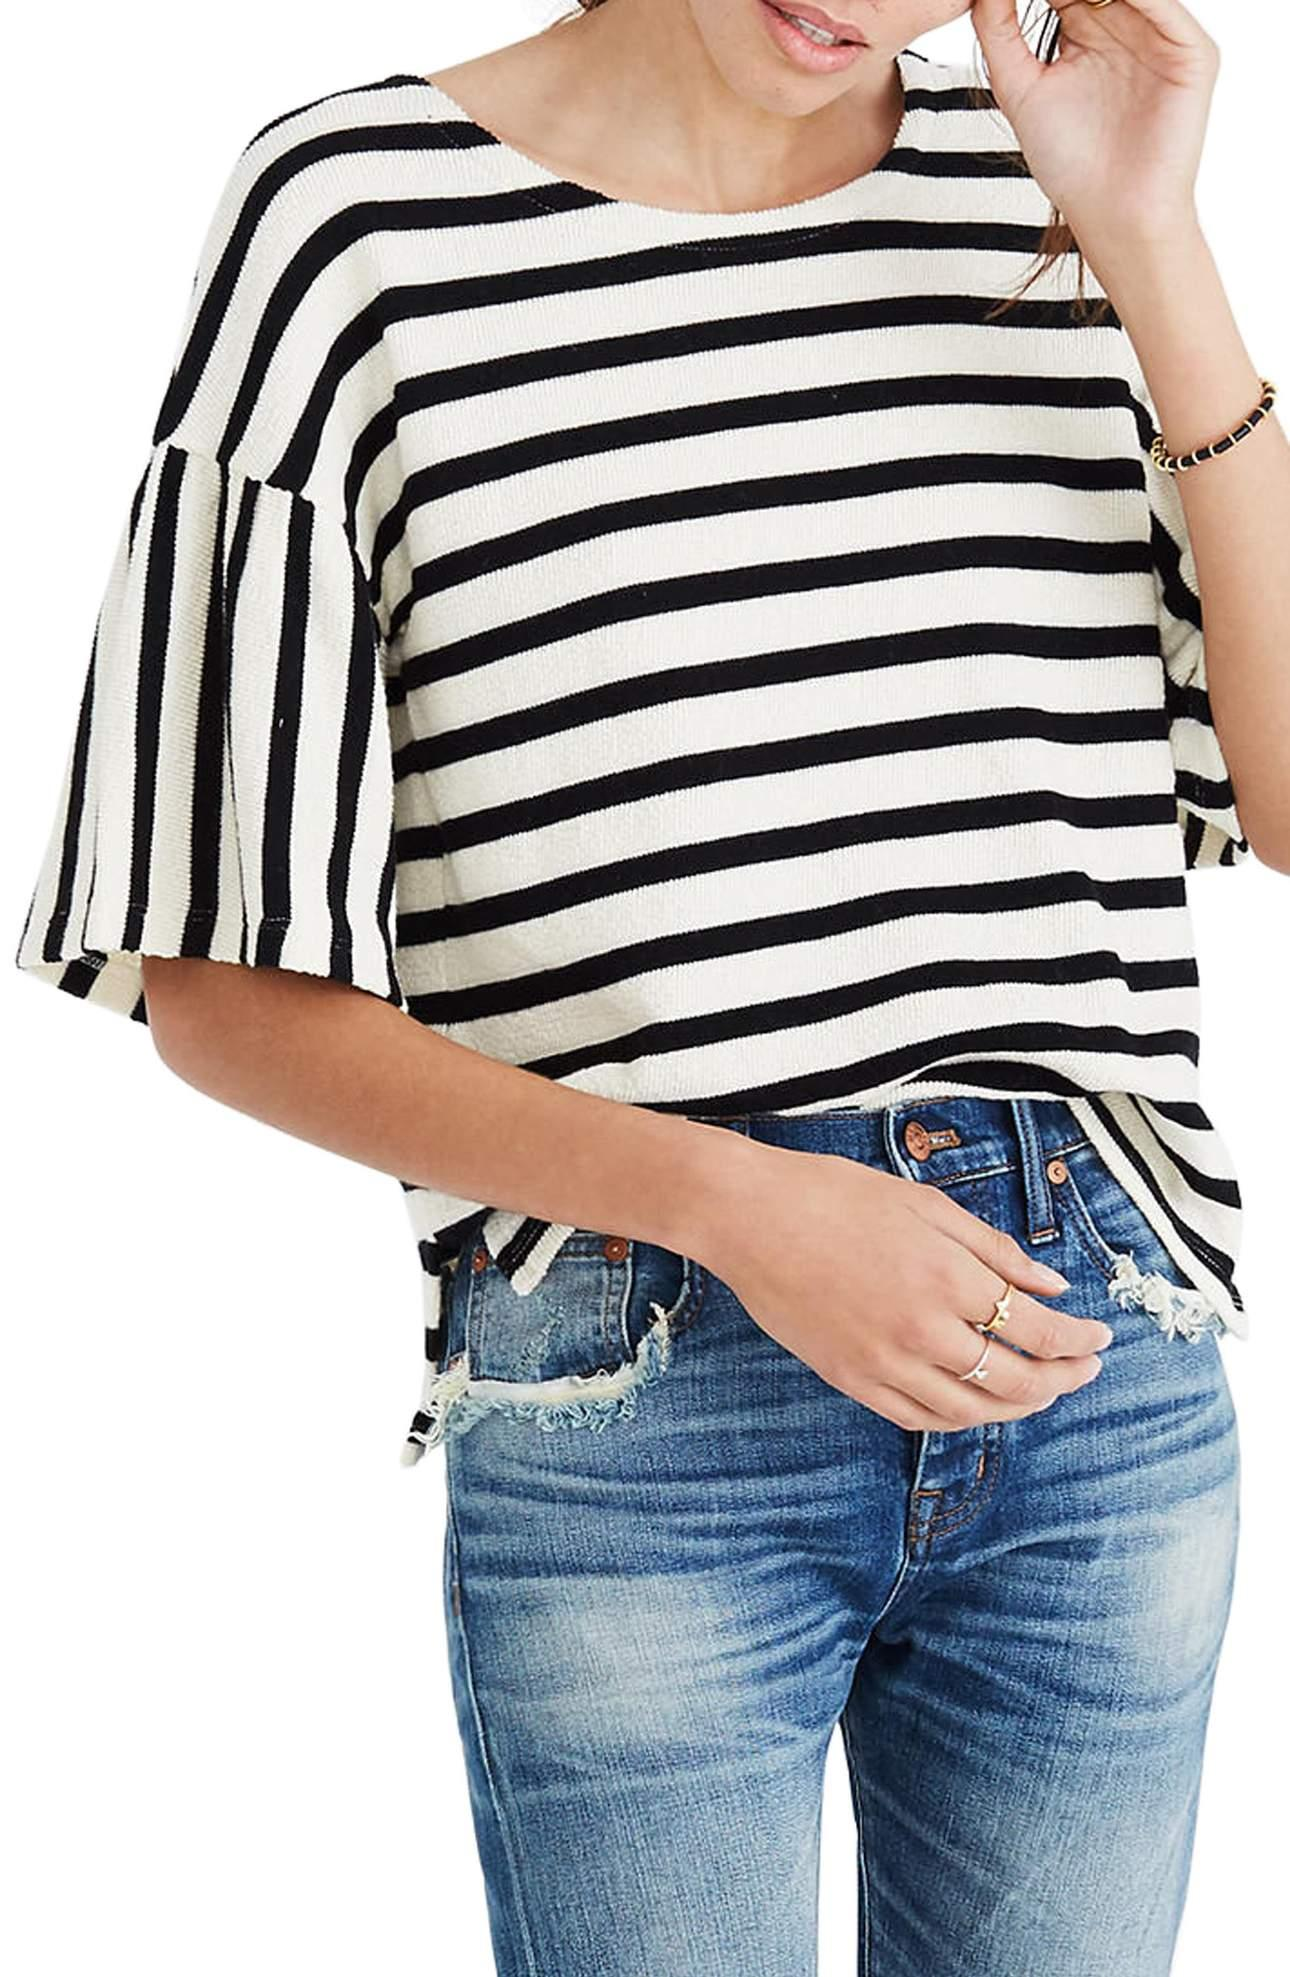 <p>I'm obsessed with this Stripe Bell Sleeve Top/MADEWELL.{&nbsp;} Trendy bell sleeves and a boxy fit put a current spin on a striped top knit from thick, textured cotton. $45.00 at MADEWELL. (Image: Nordstrom){&nbsp;}</p><p></p>